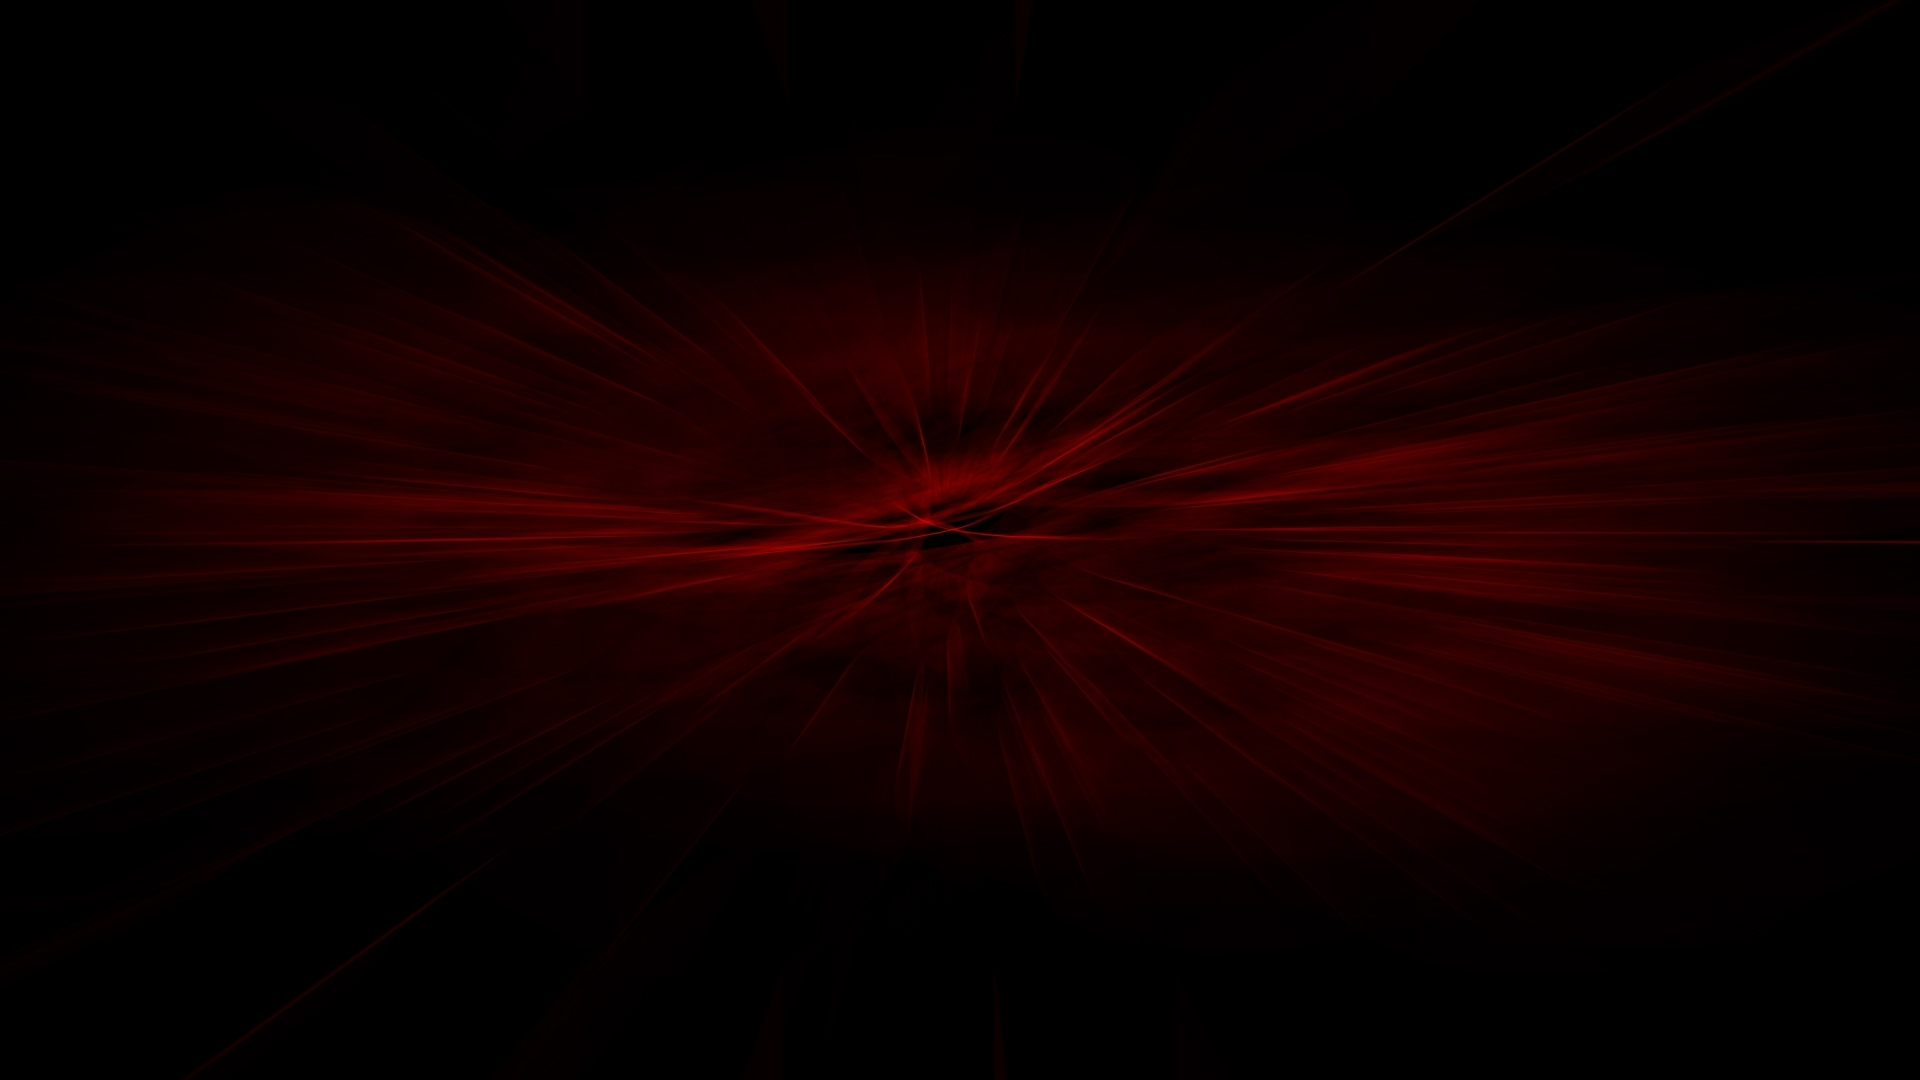 199 red hd wallpapers | background images - wallpaper abyss